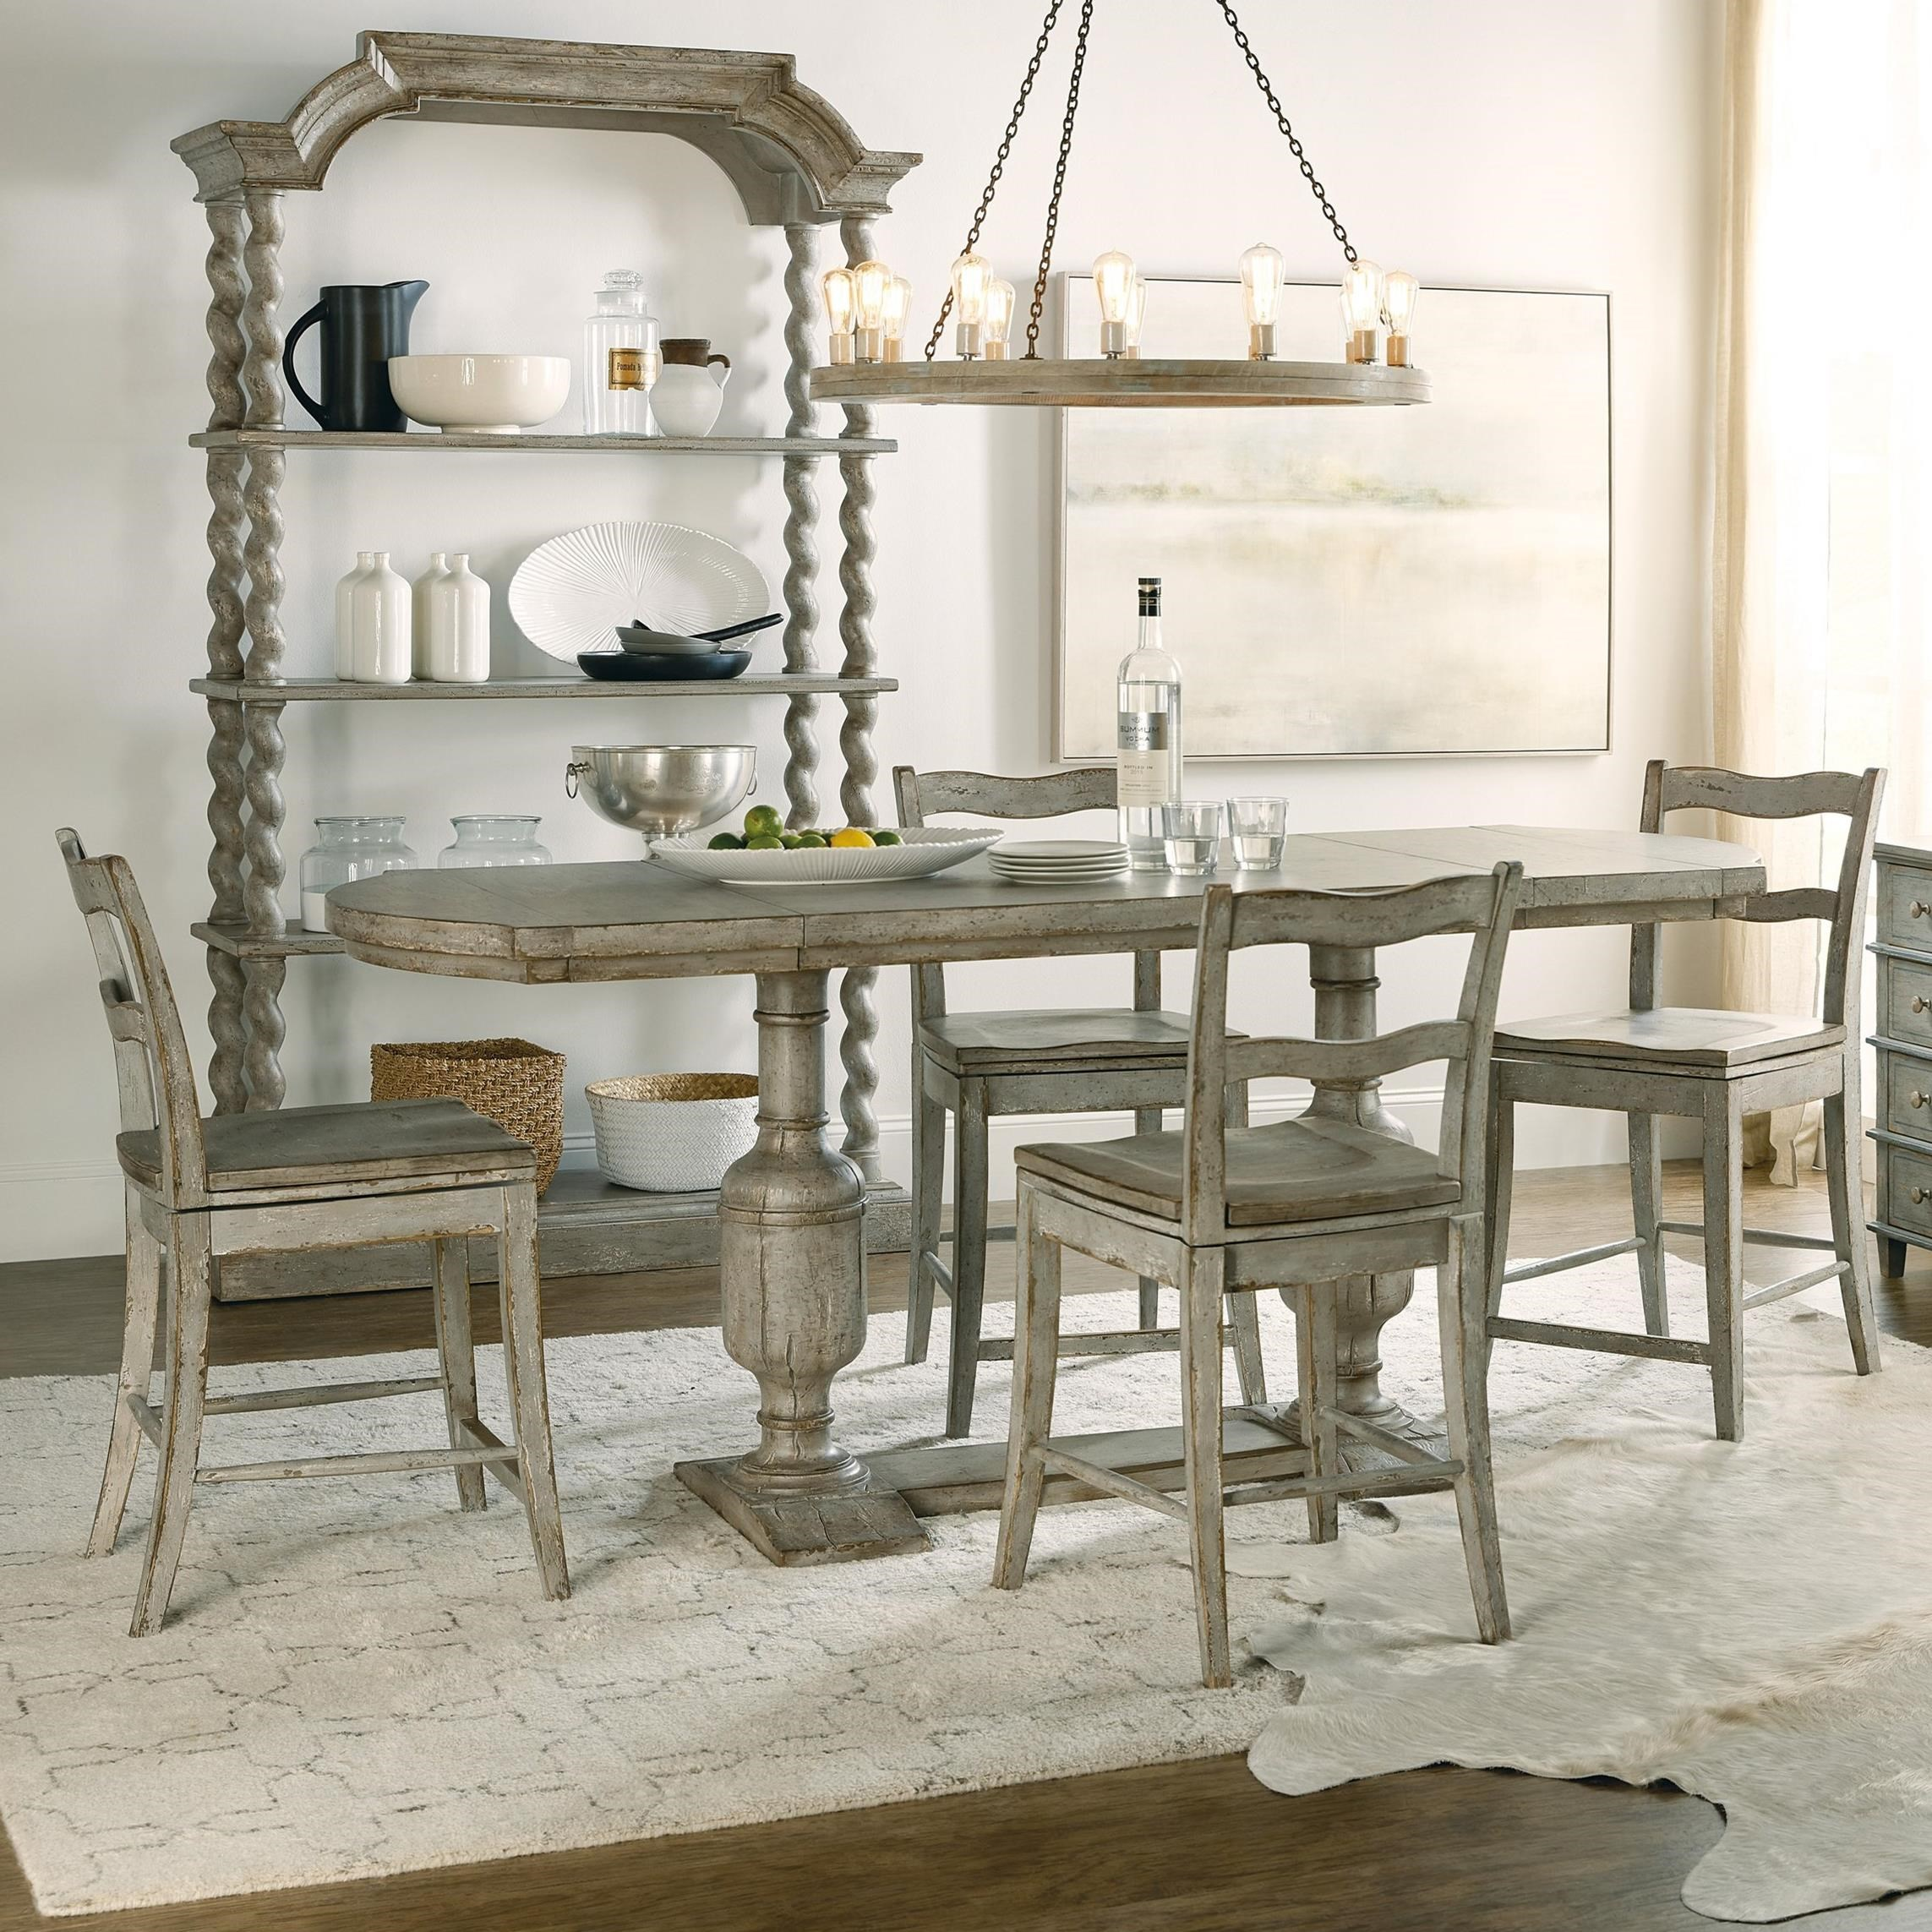 Alfresco 5-Piece Counter Height Table Set by Hamilton Home at Sprintz Furniture